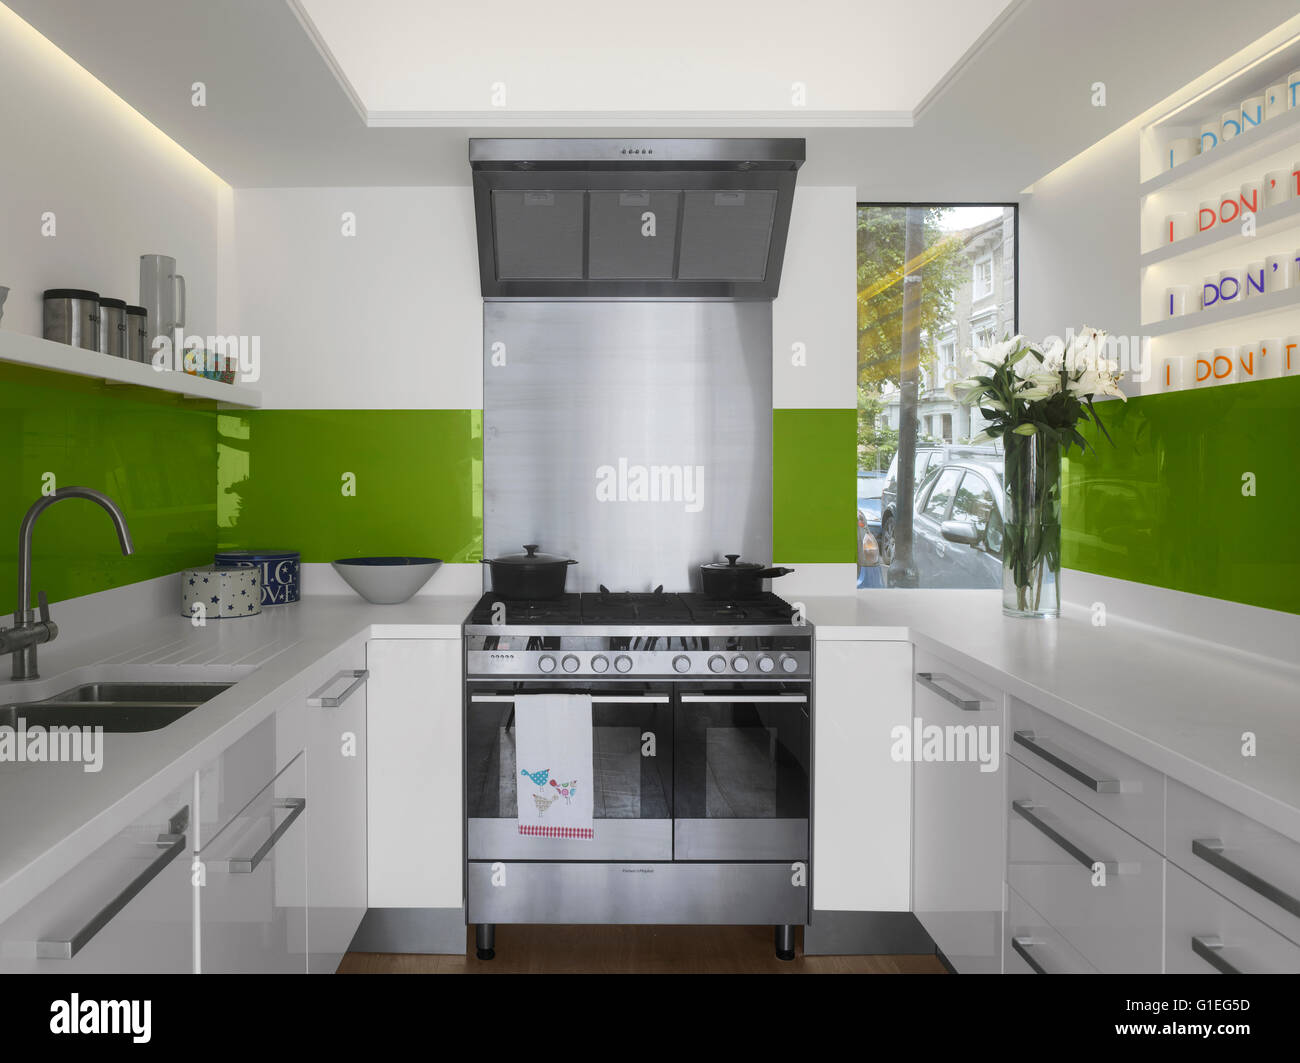 Modern Family home, Shepherds Bush, London. Kitchen with modern sleek features and stainless steel appliances. Green - Stock Image